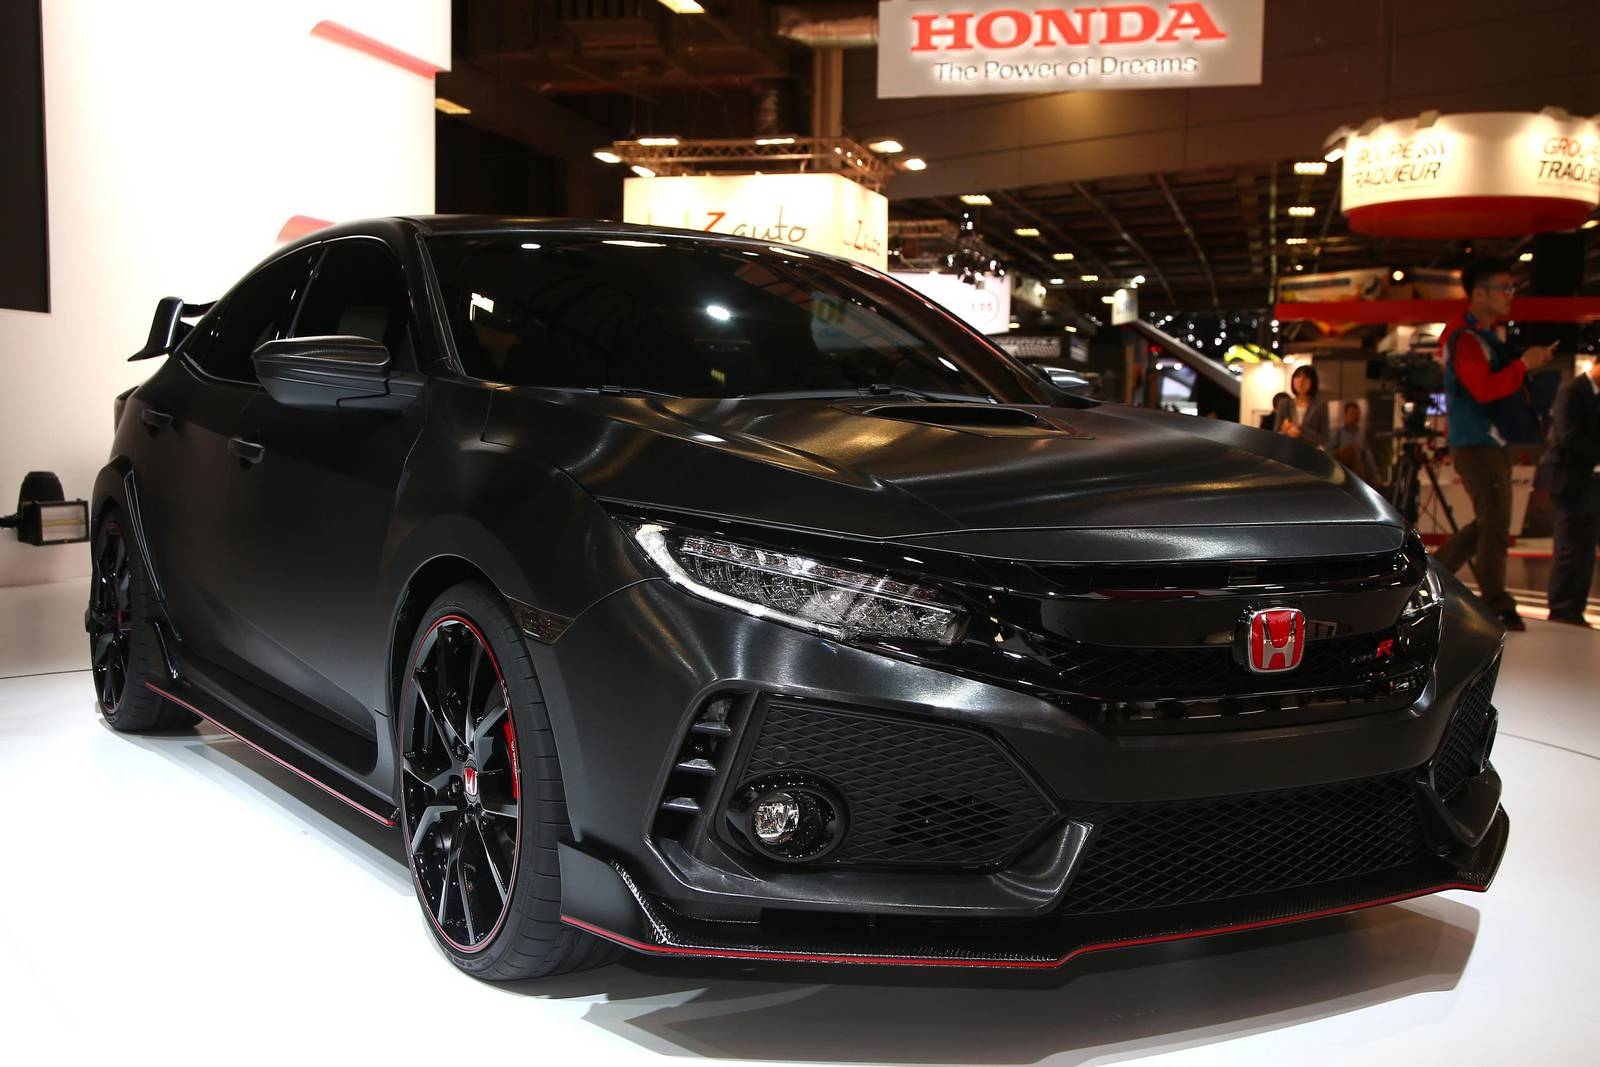 paris 2016 honda civic type r prototype 5th generation gtspirit. Black Bedroom Furniture Sets. Home Design Ideas